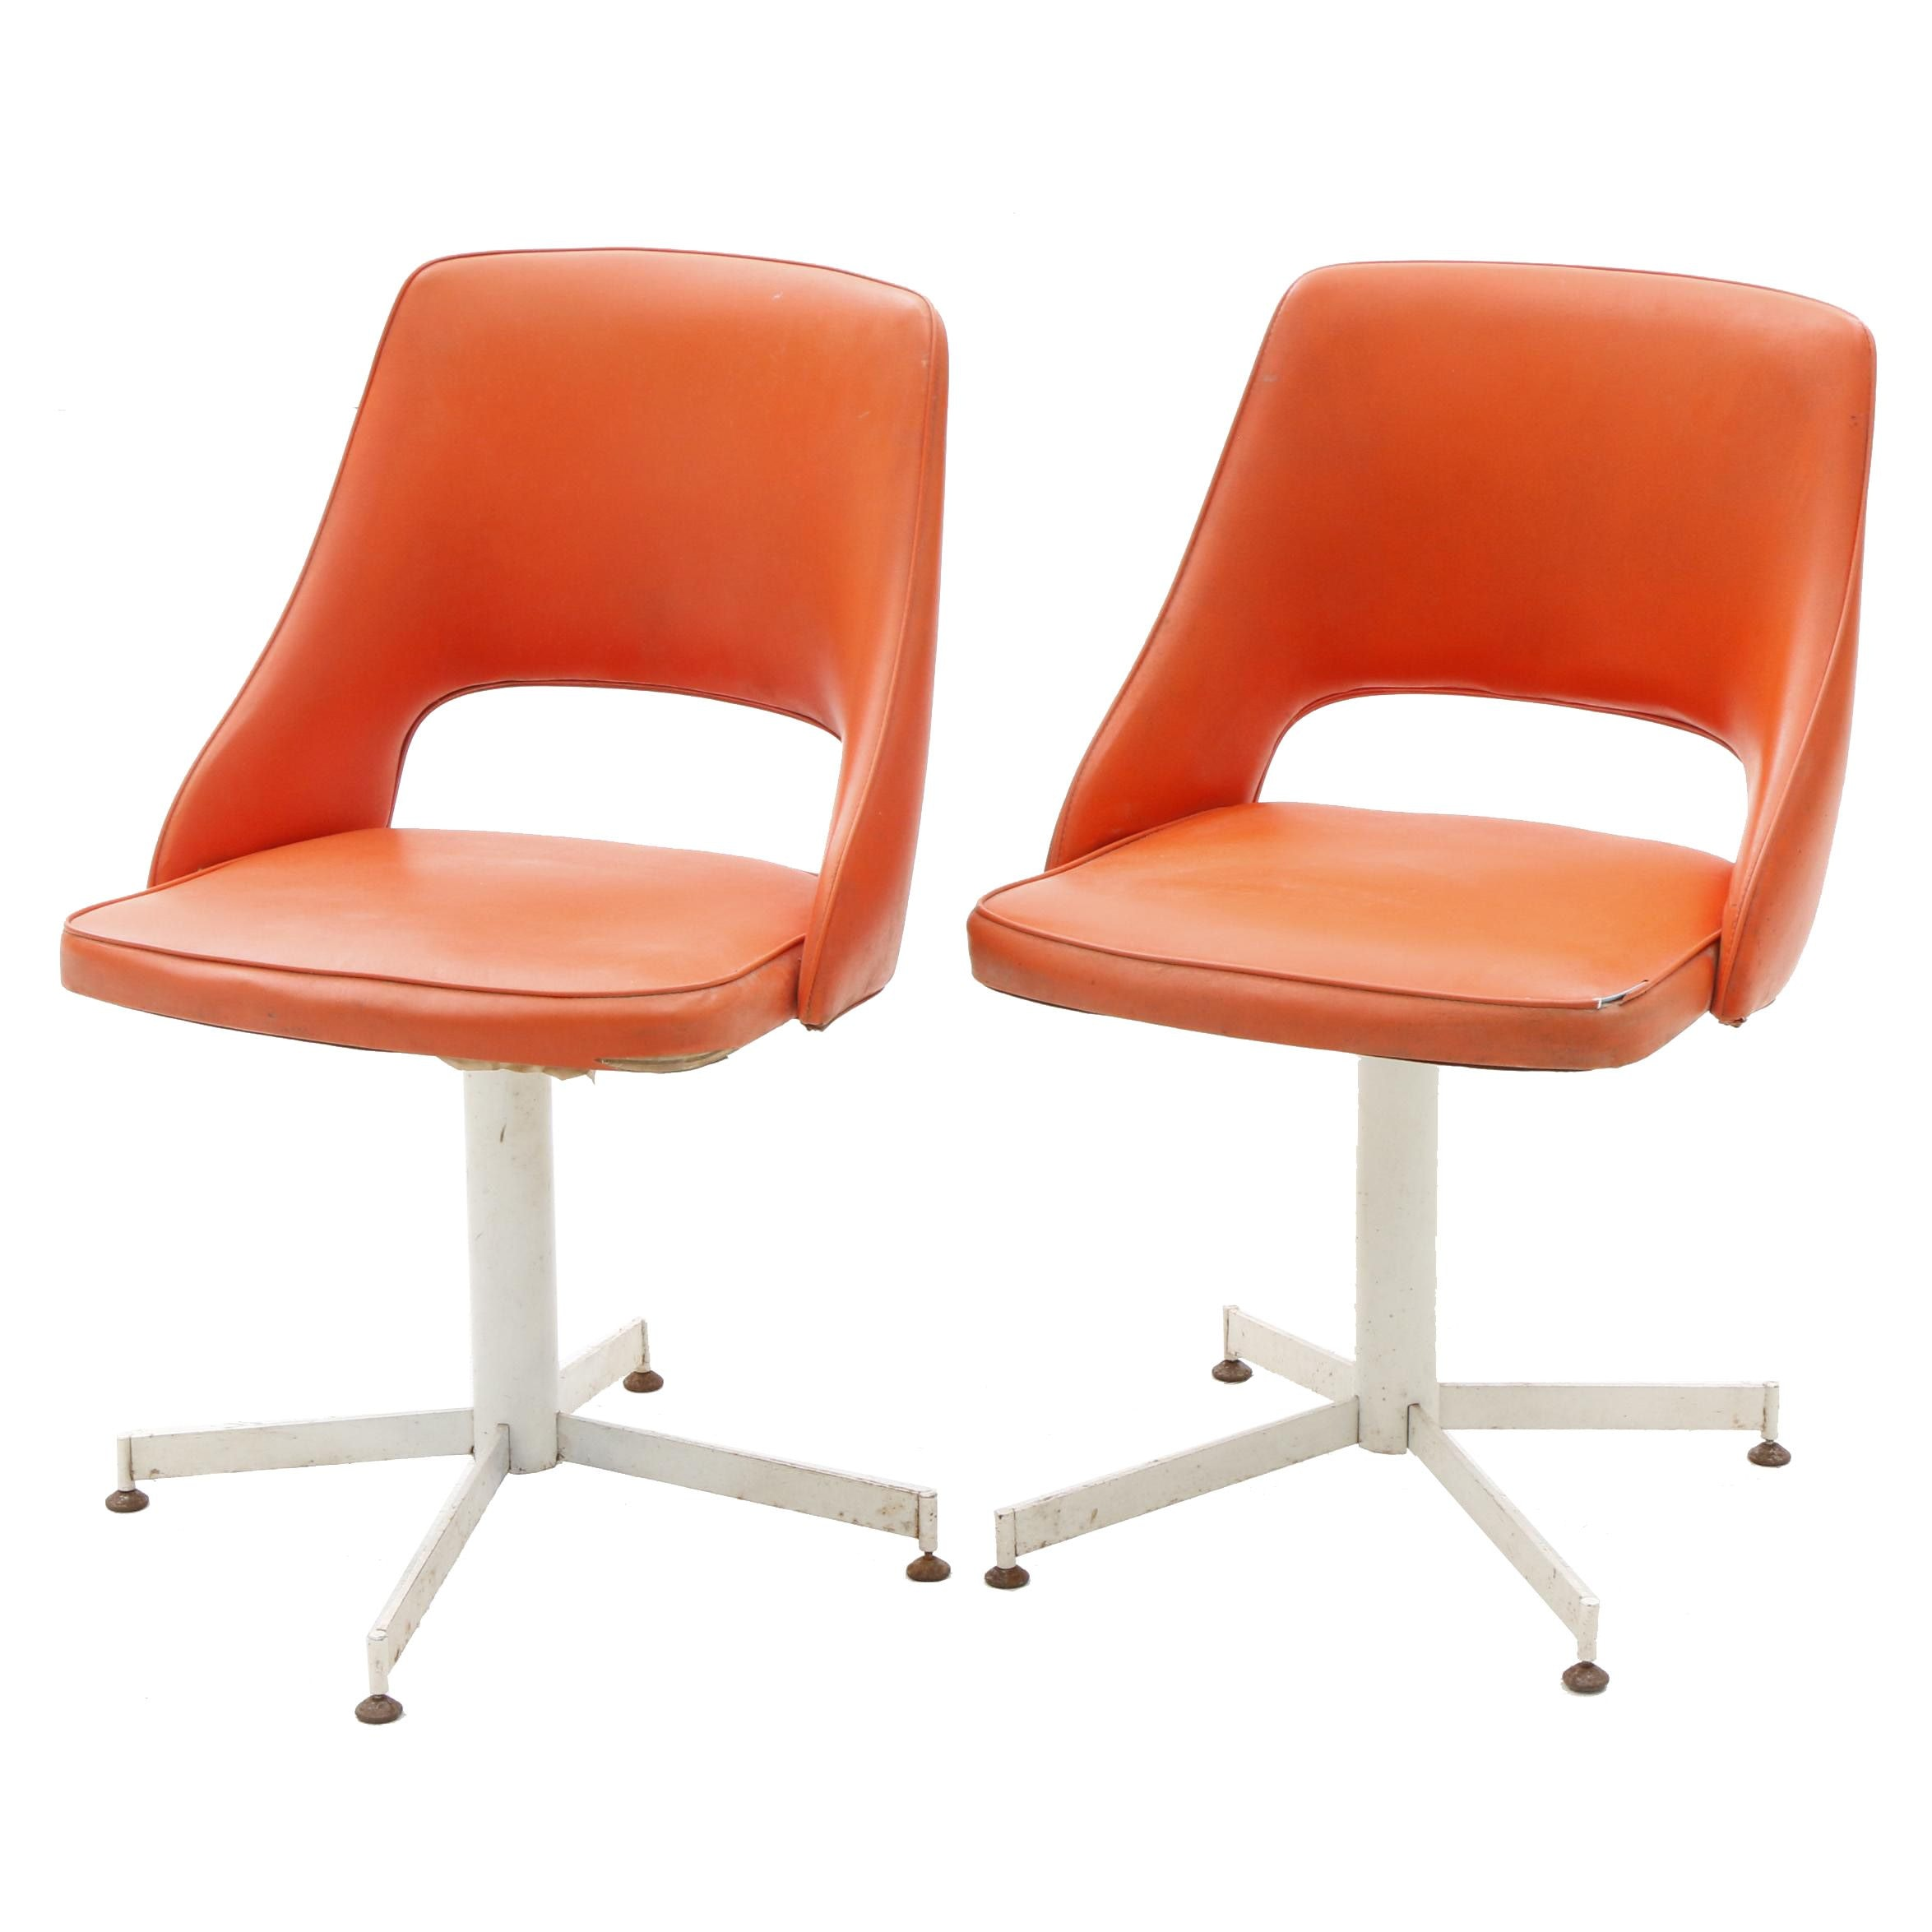 Pair of Orange Vinyl Chairs by Progressive Furniture